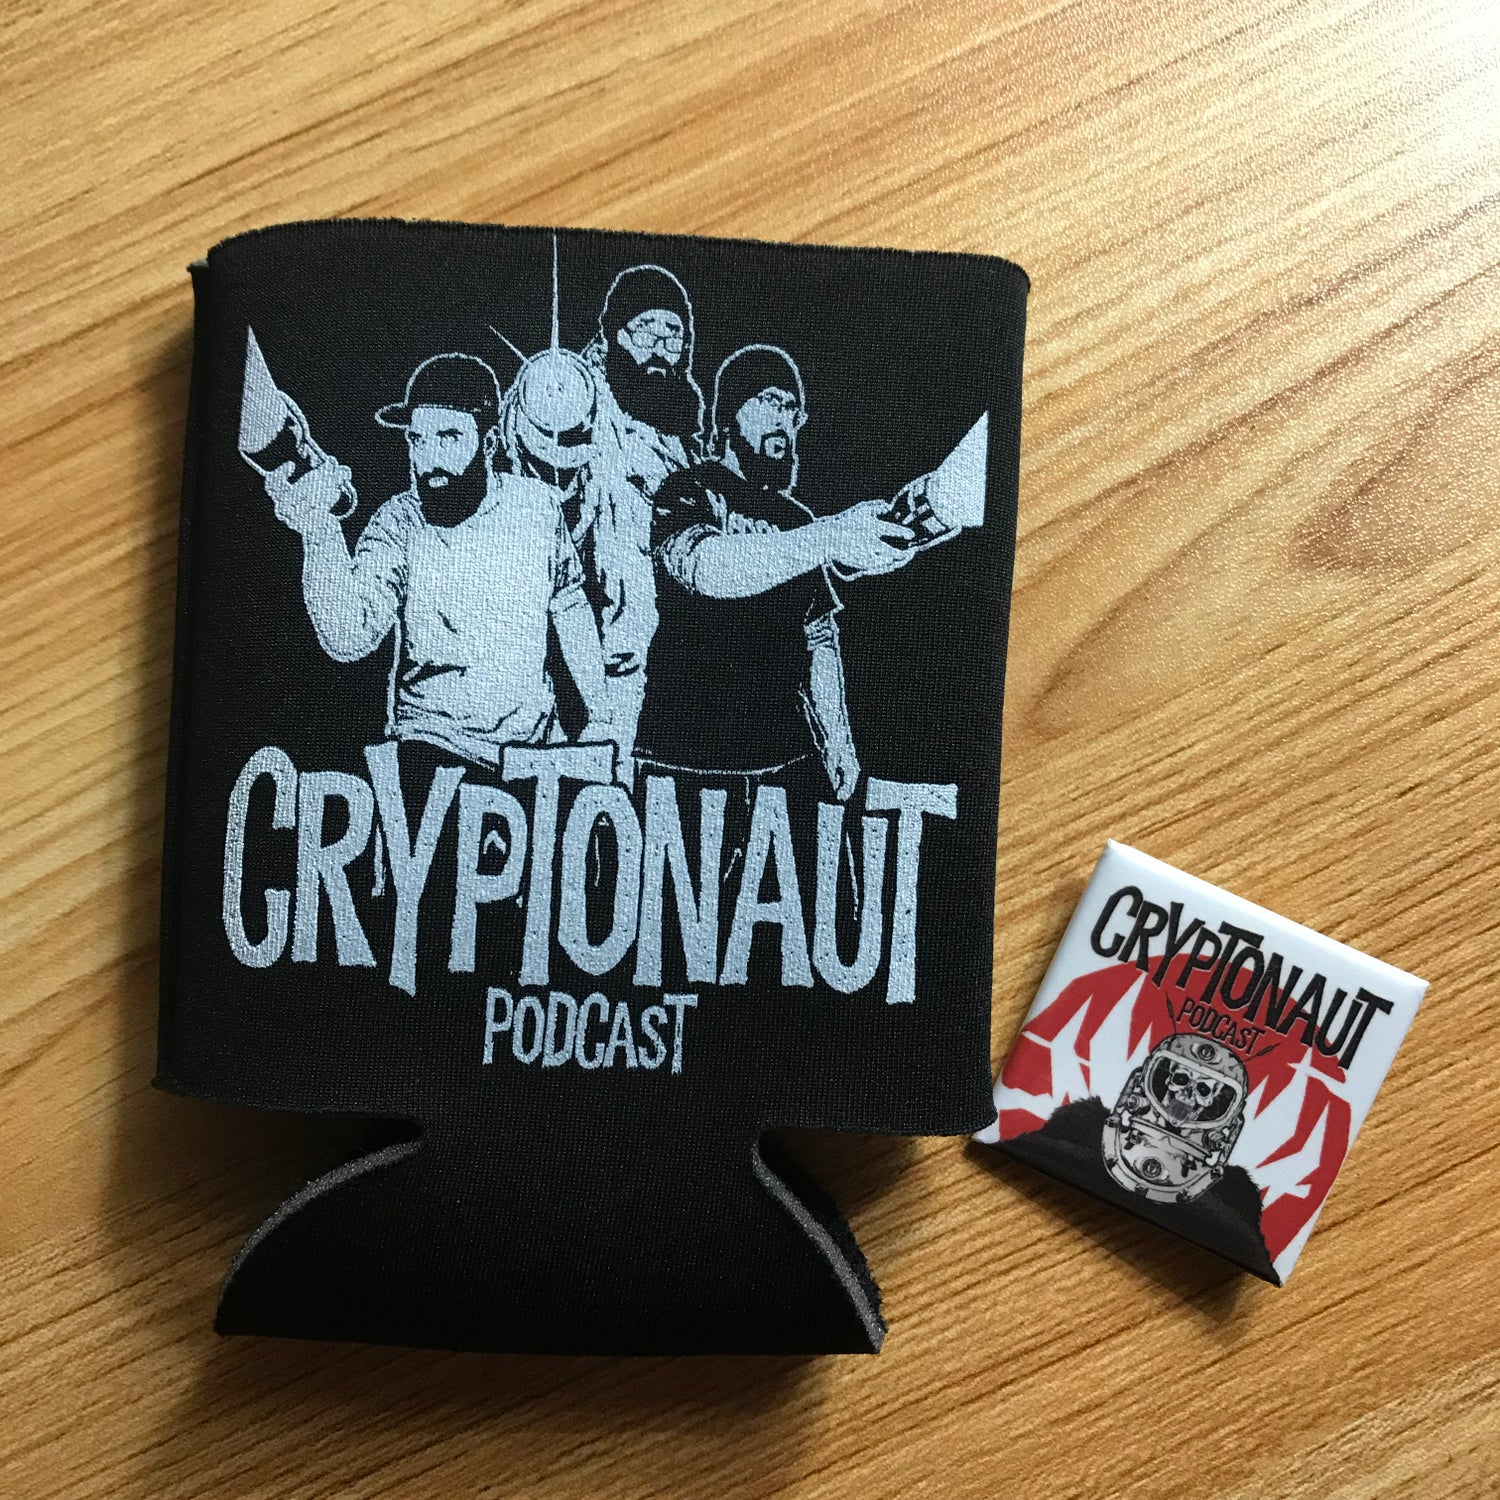 Image of Cryptonaut Podcast Koozie and BONUS PIN!